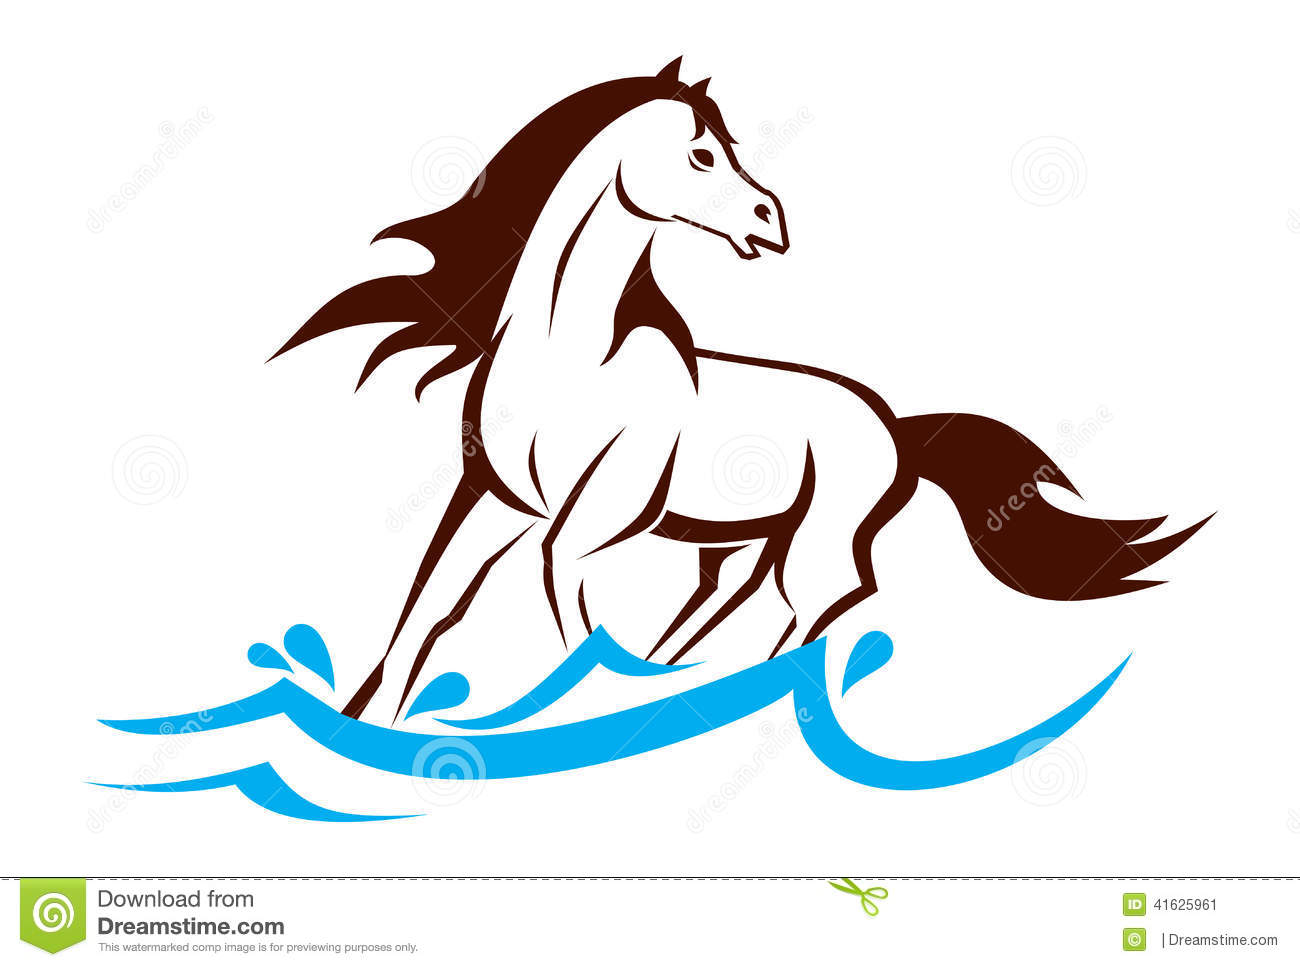 The Running Horse Stock Vector Illustration Of Drops 41625961